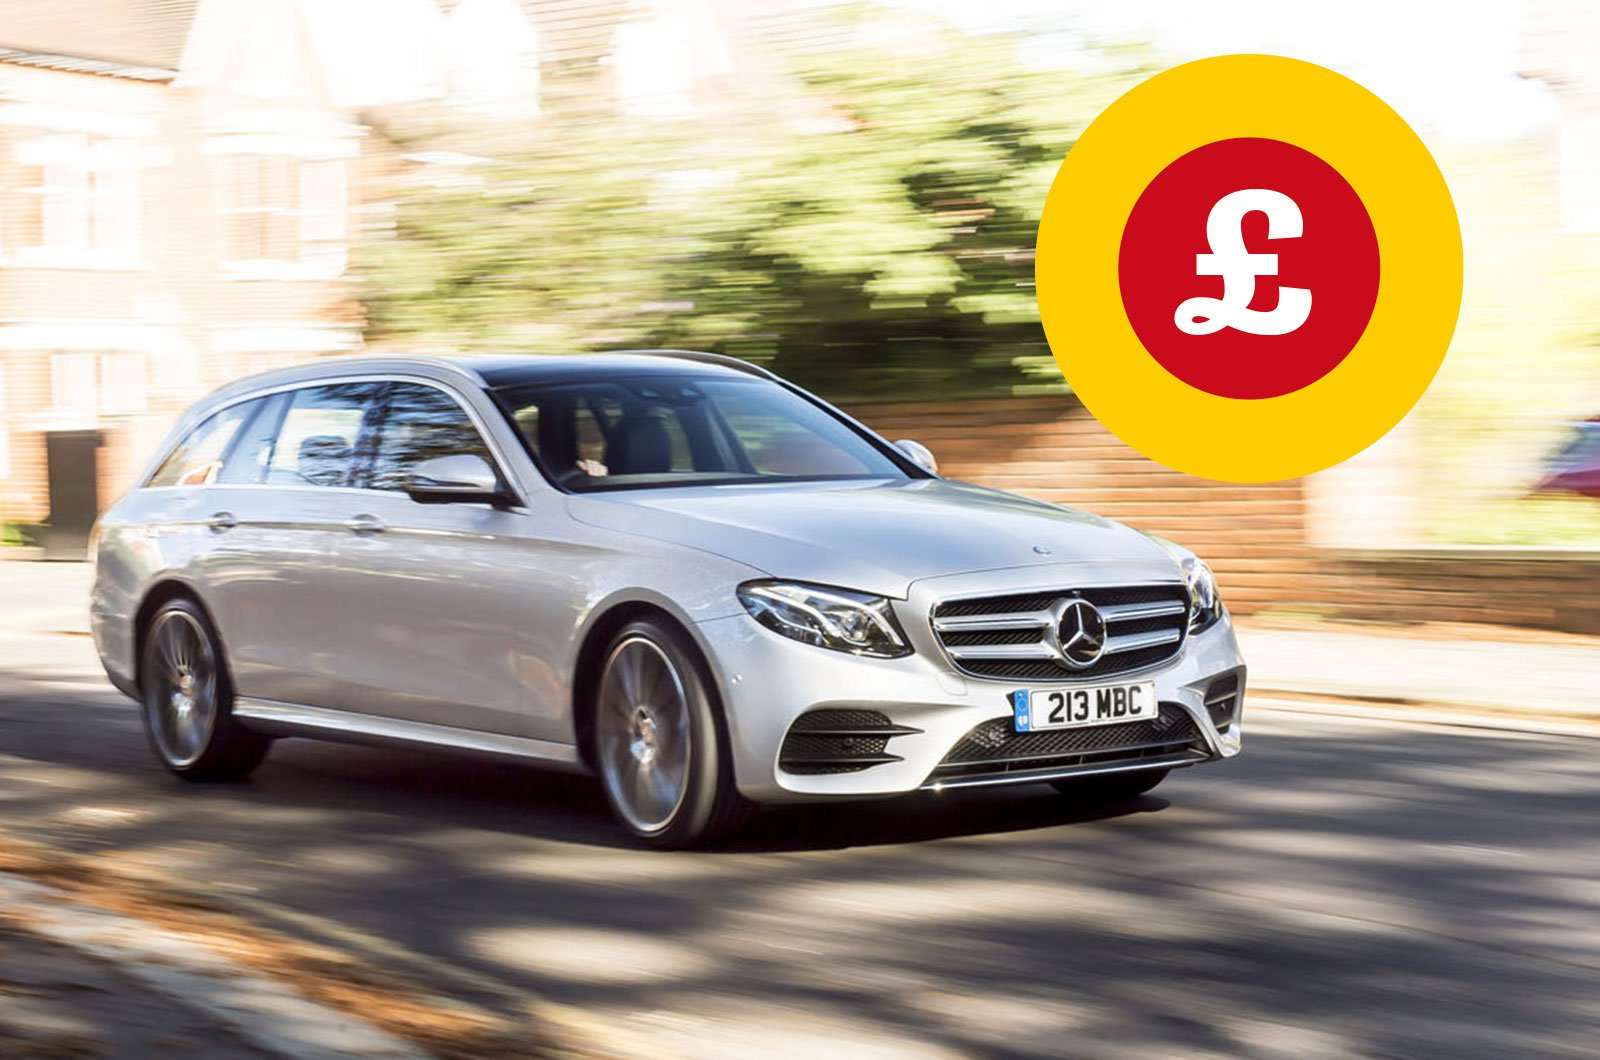 Mercedes E-Class Estate with Target Price logo